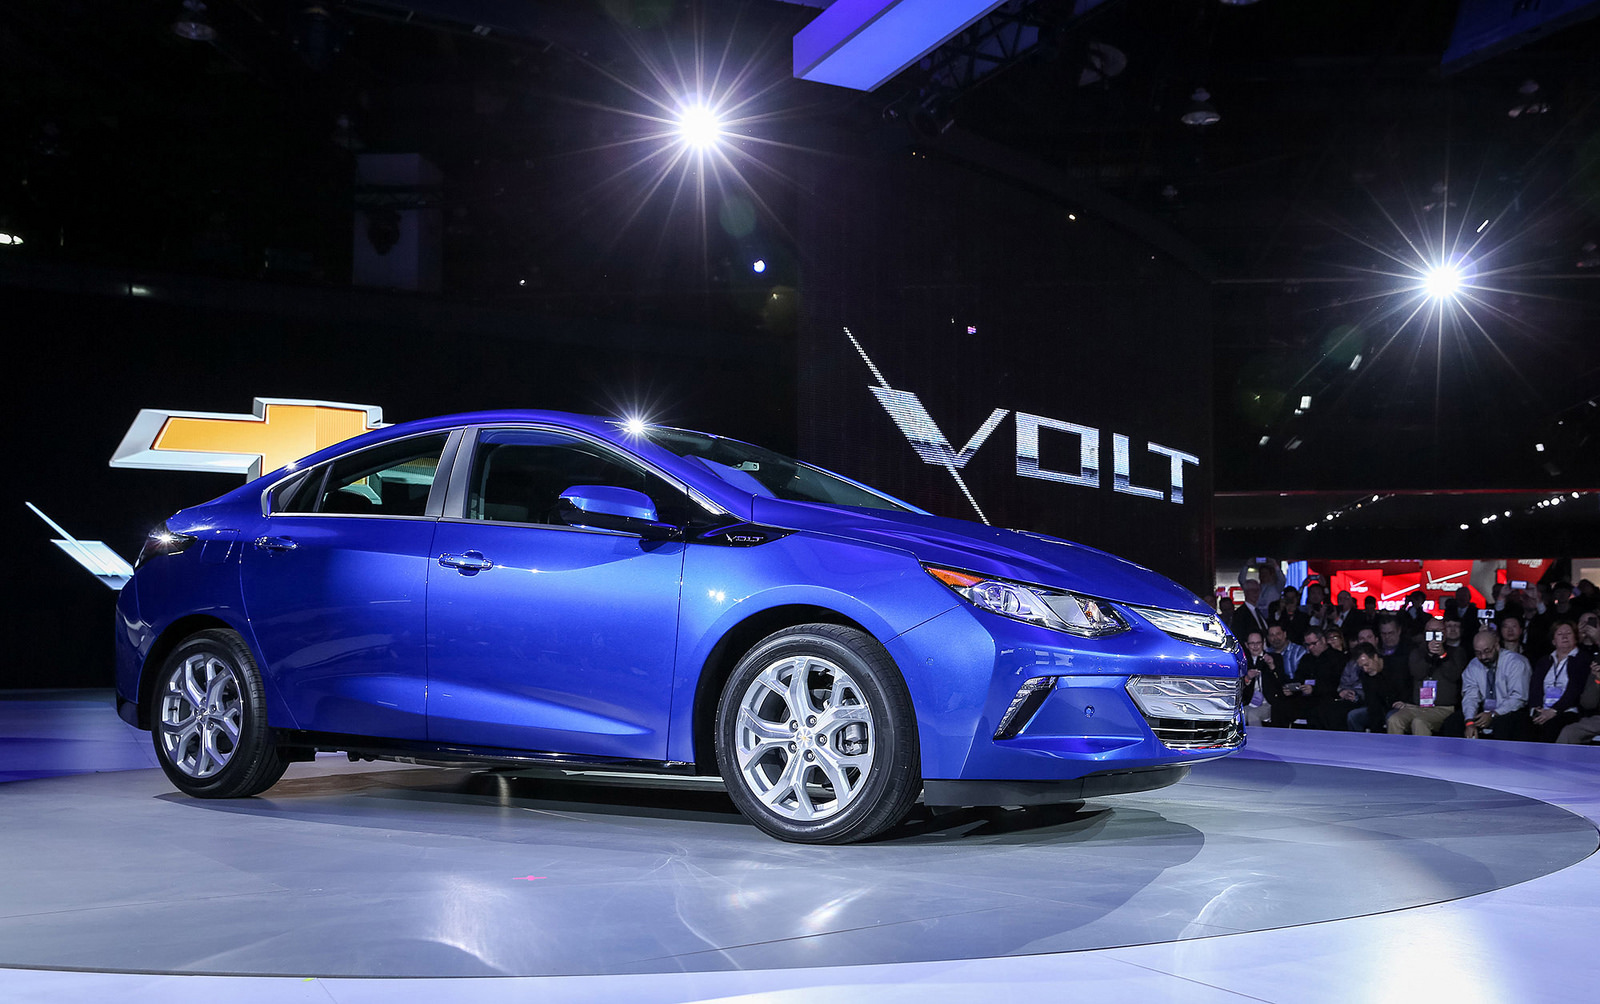 Details Emerge Of 2017 Chevy Volt The News Wheel